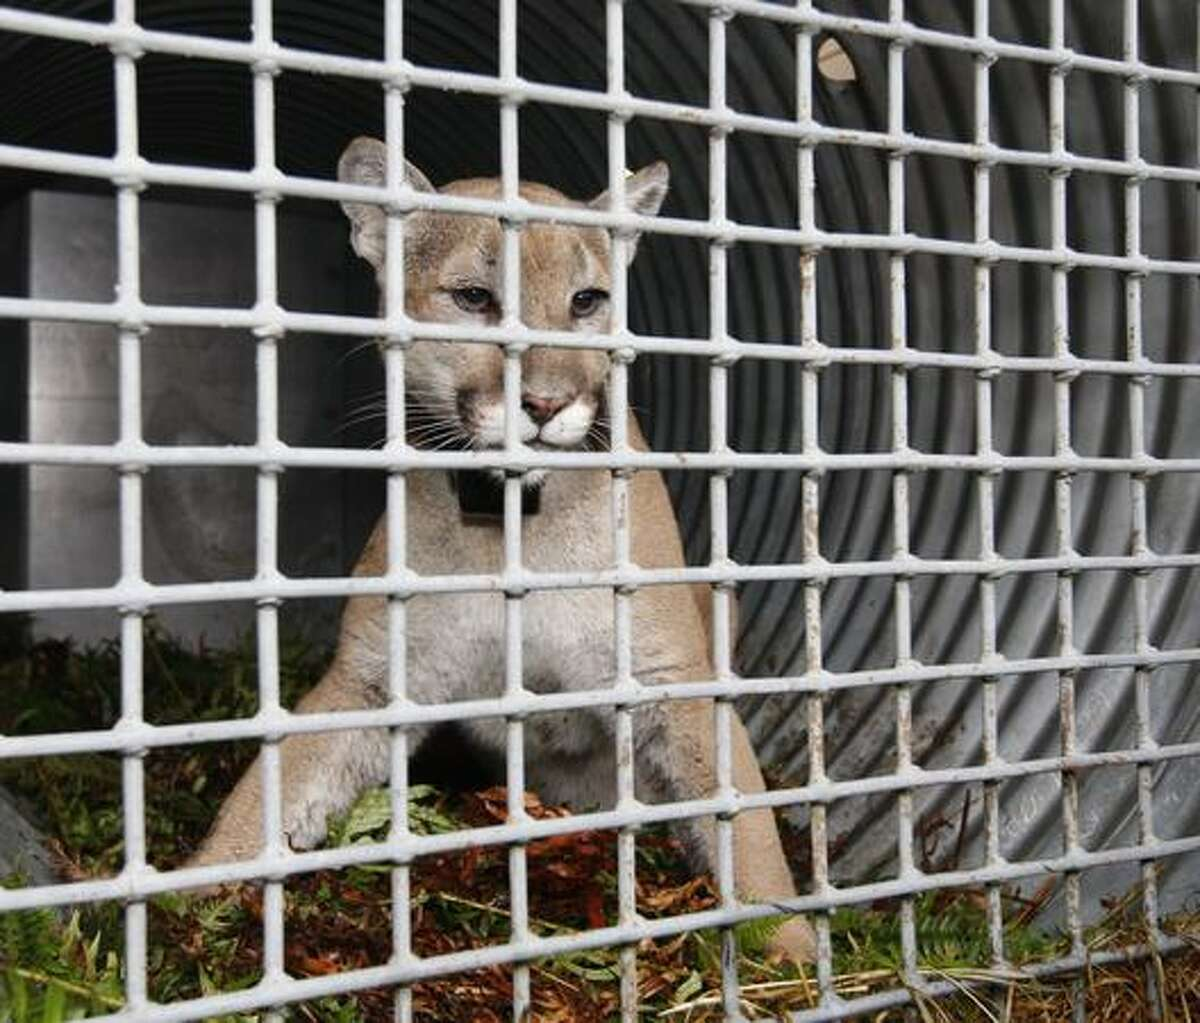 A male cougar is housed in a temporary cage after it was captured in Seattle's Discovery Park on Sunday. It had lived in Seattle for more than two weeks and forced the city's largest park to close. The cougar was returned to the wild, state wildlife officials said. (AP Photo/Kevin P. Casey)